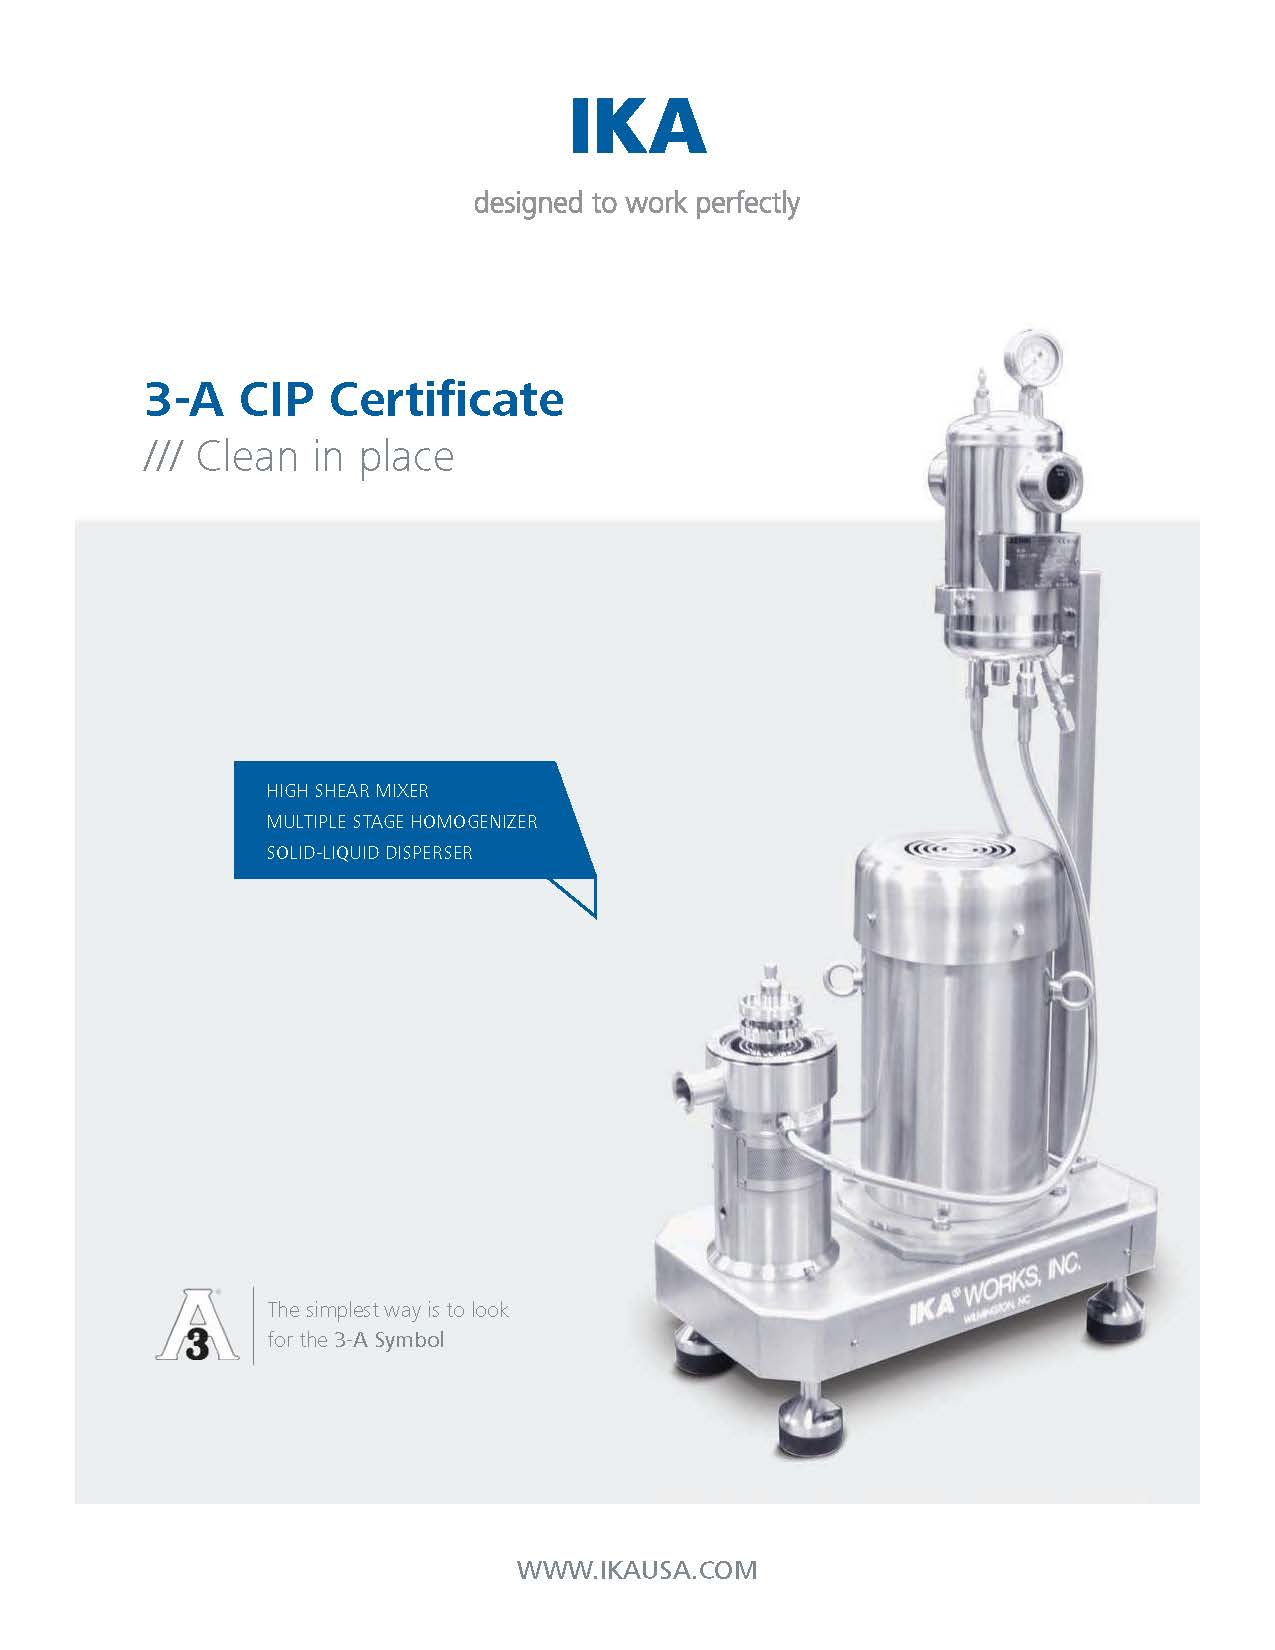 3-A CIP Certificate Image